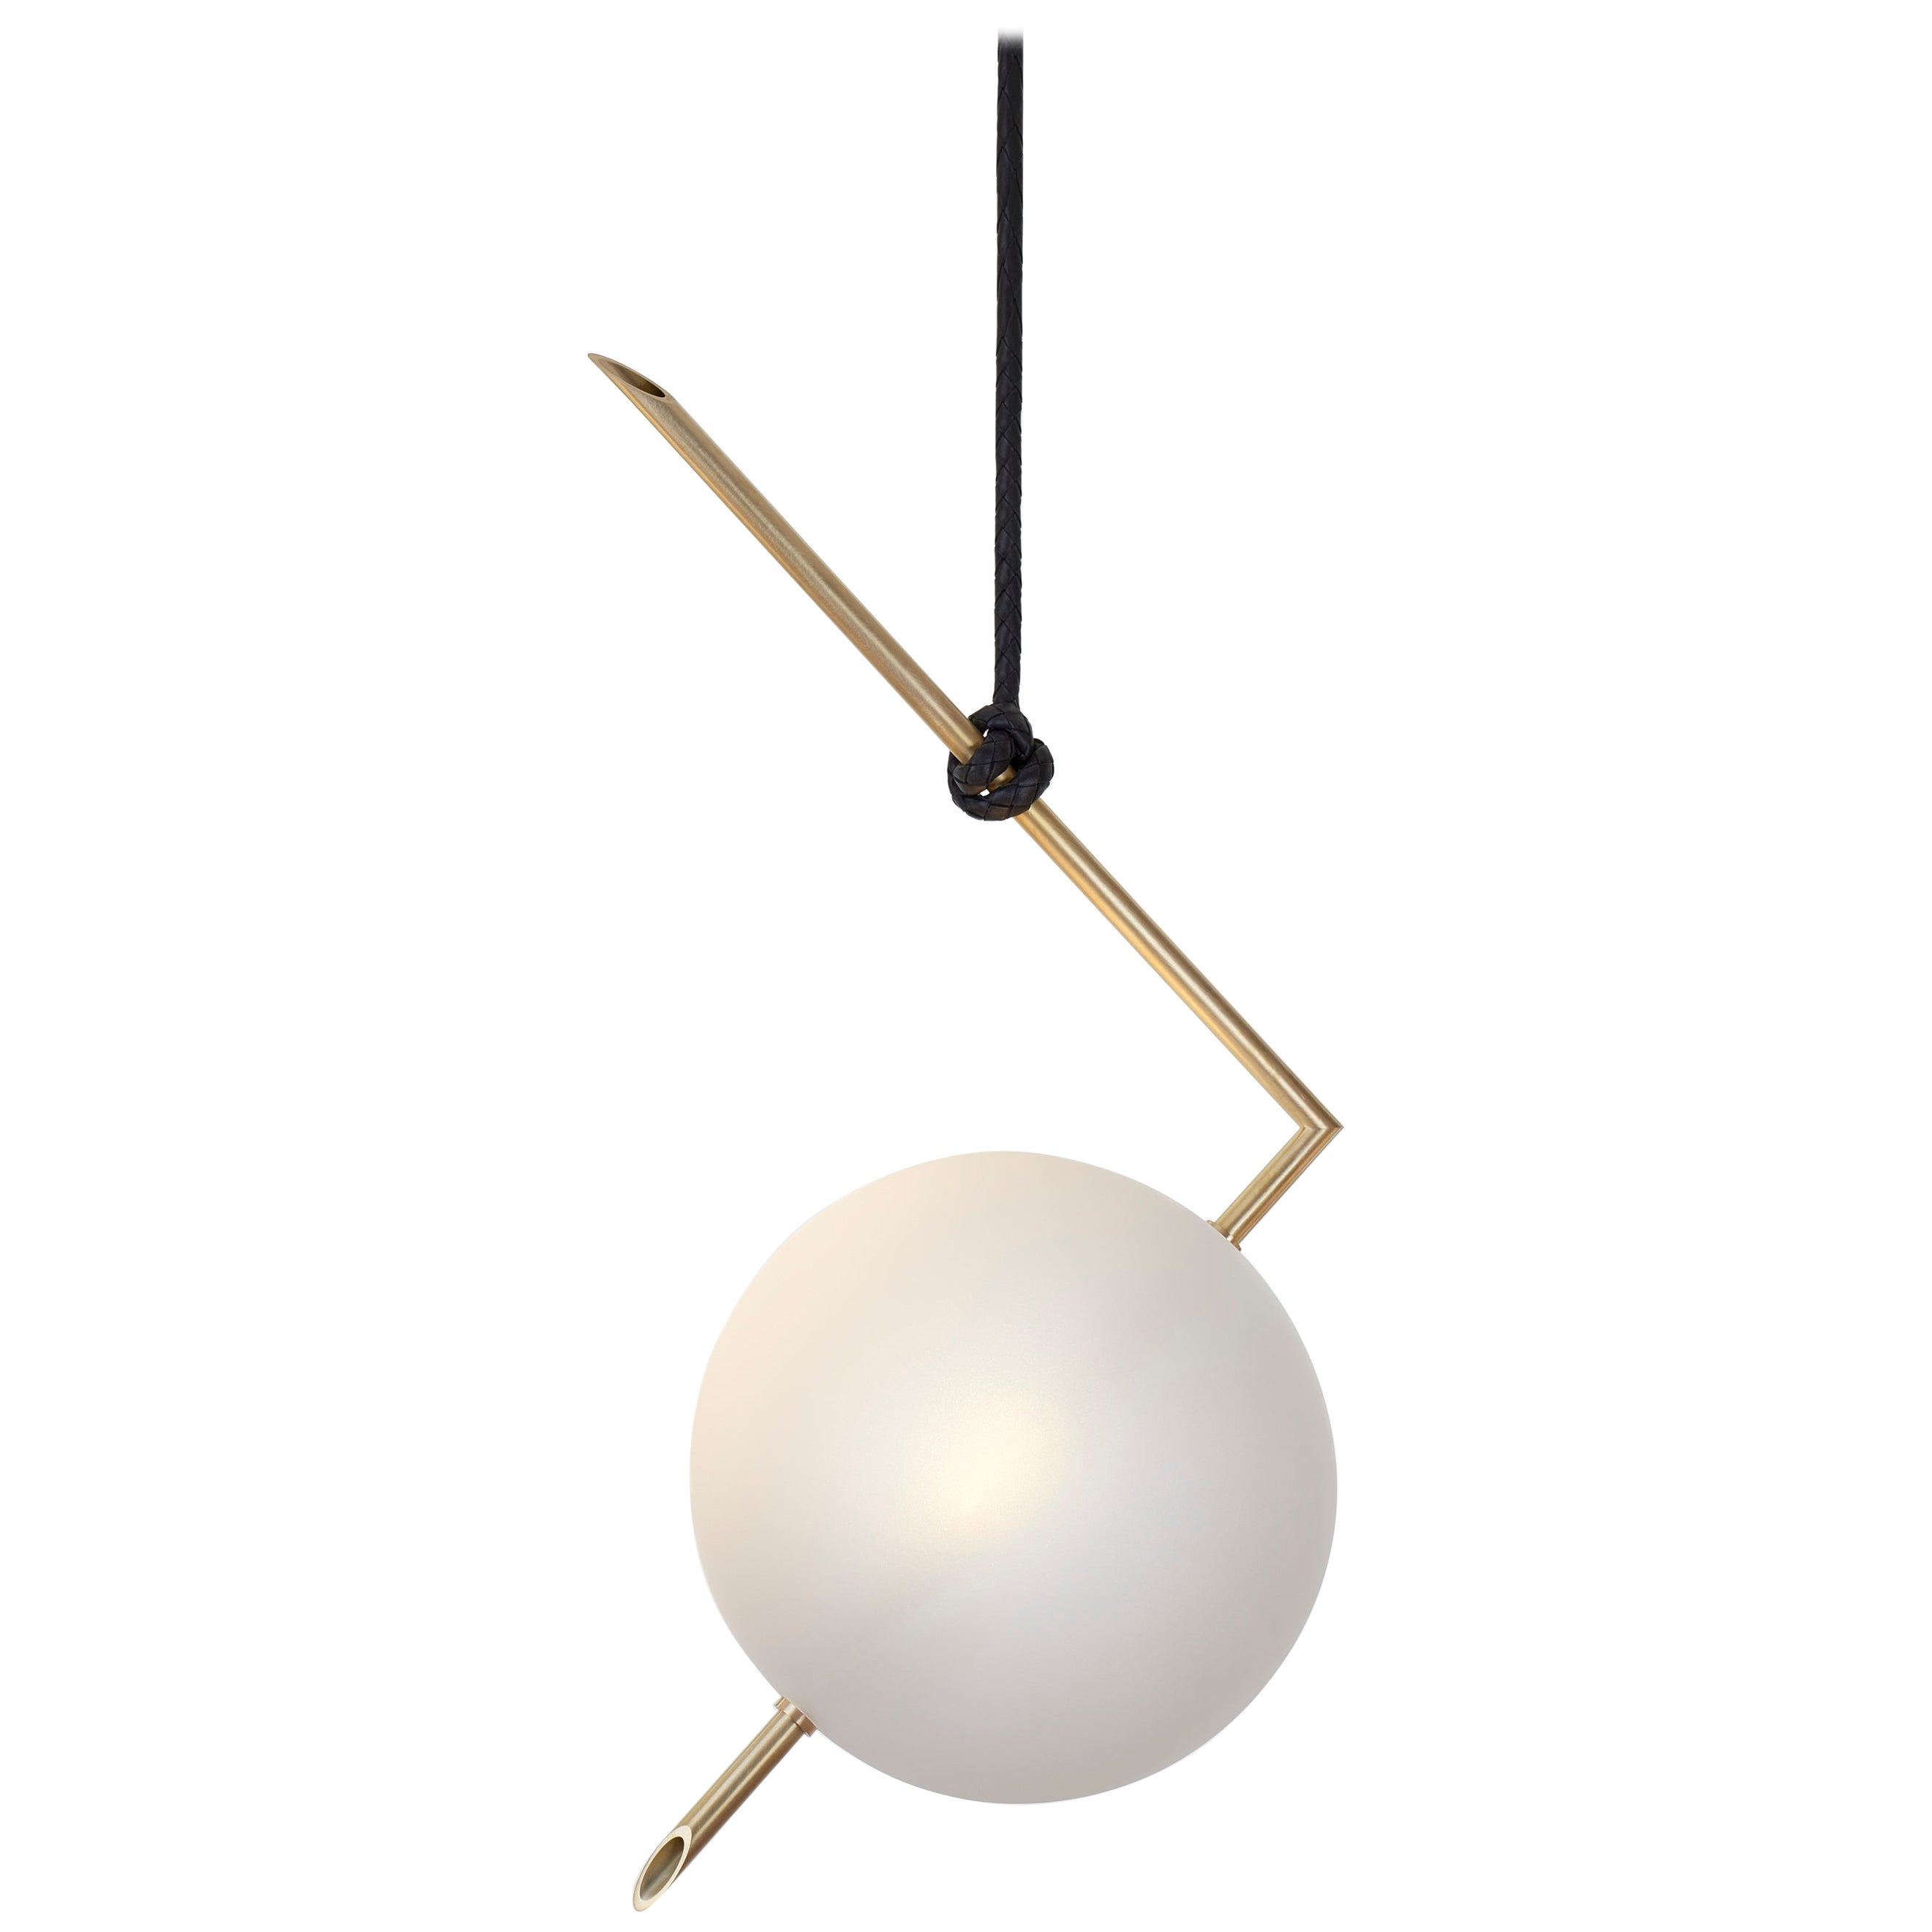 Nuvola BOLD One Light Pendant, Stardust White Blown Glass, Leather, Brass